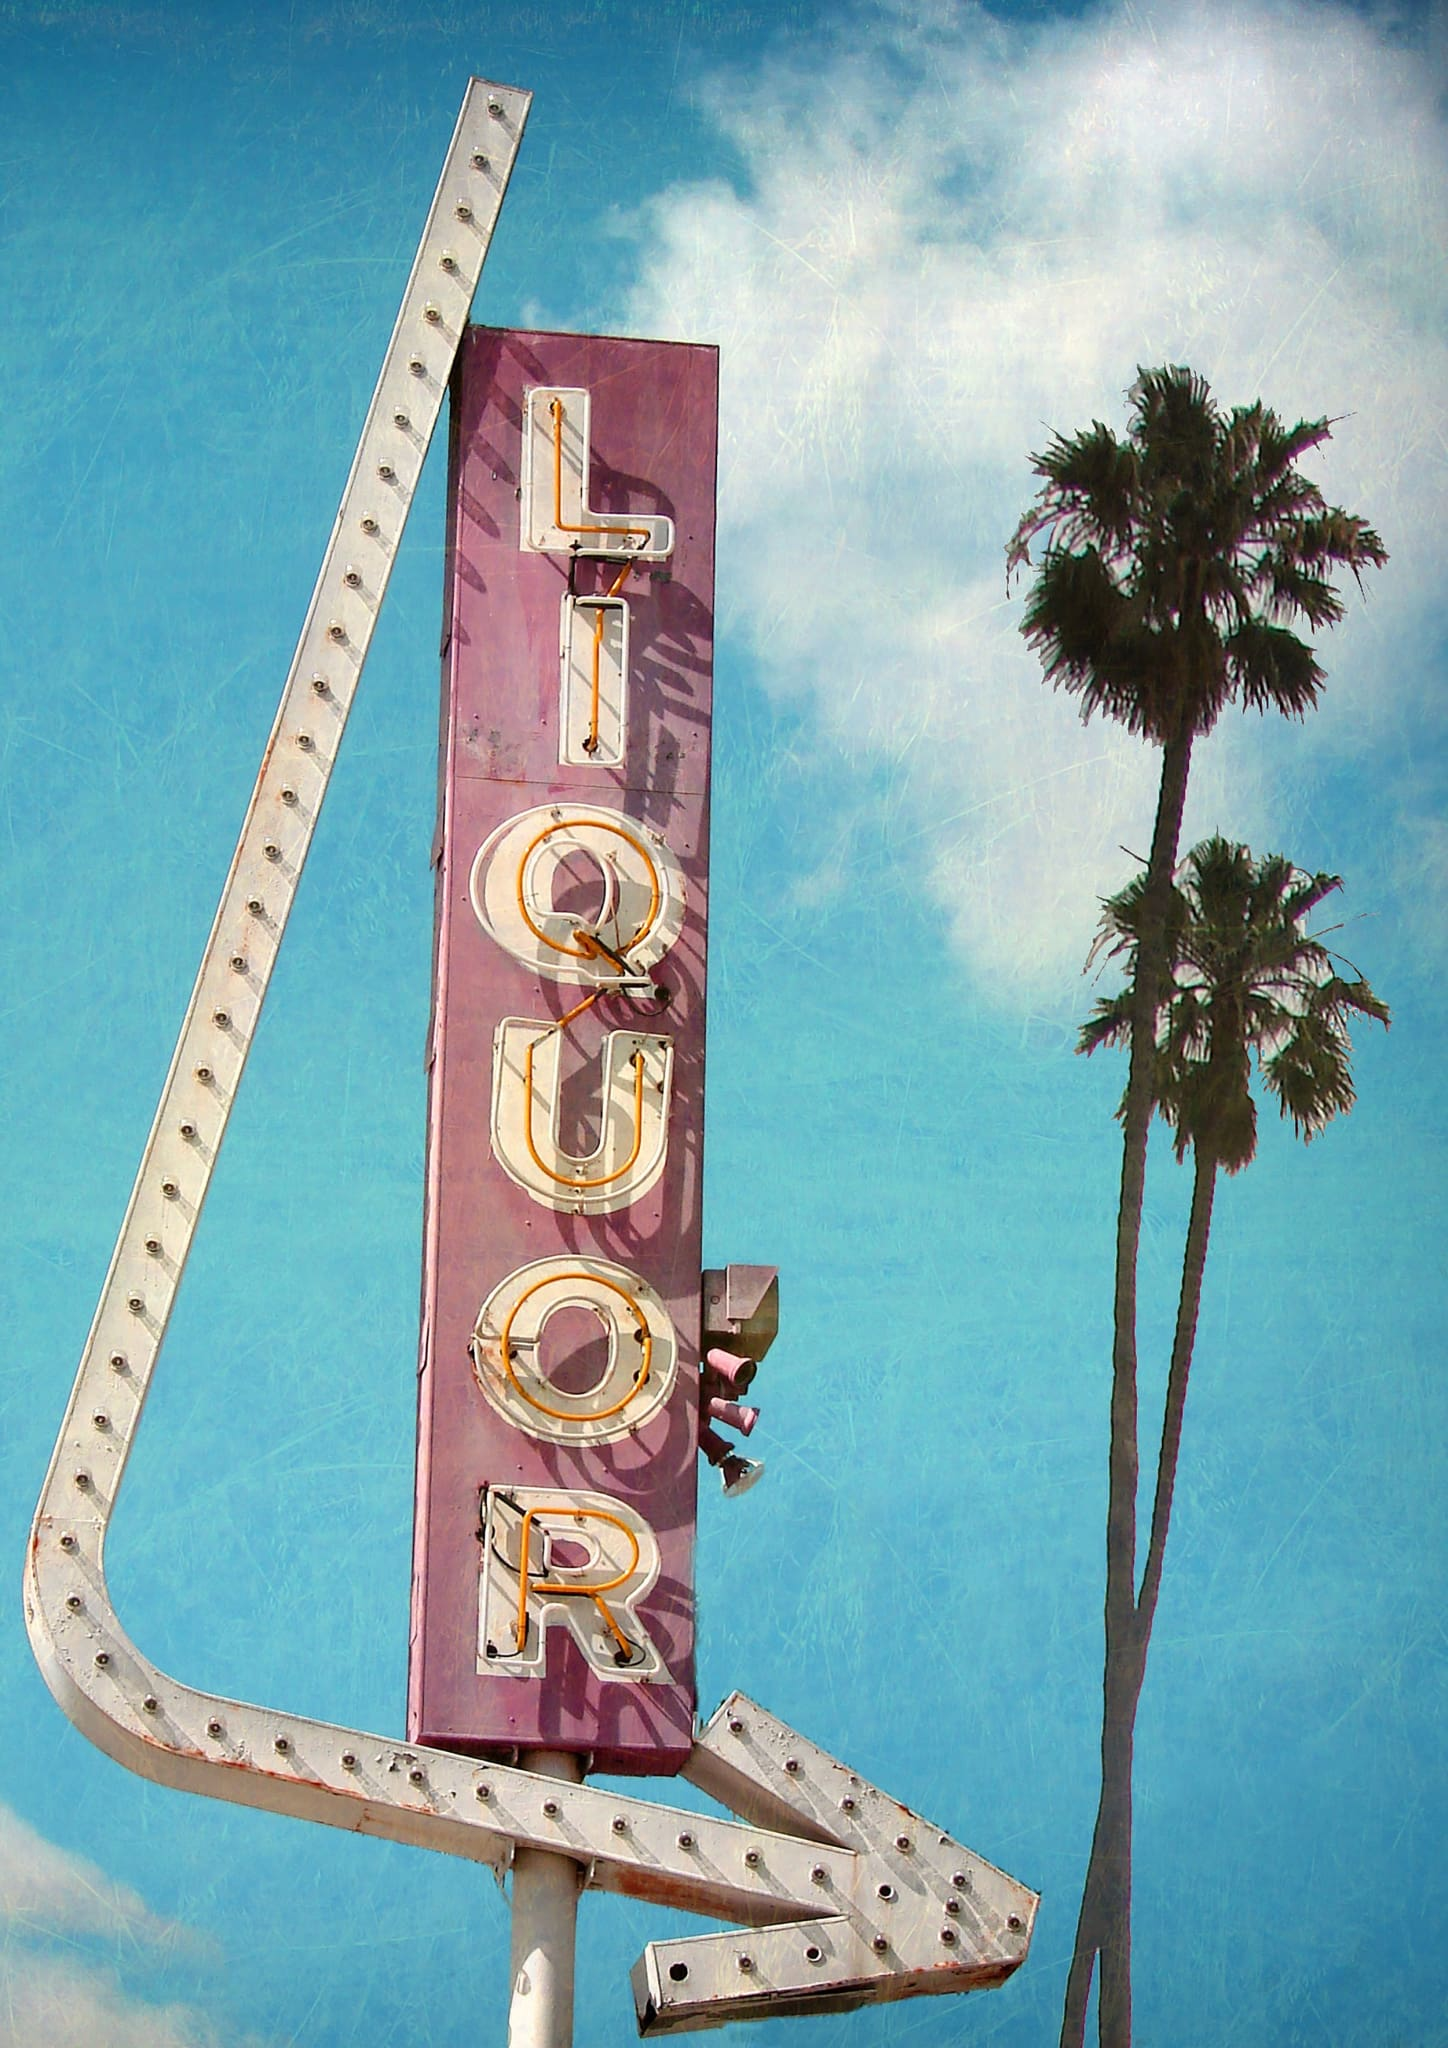 LIQUOR - HONEYMOON HOTEL